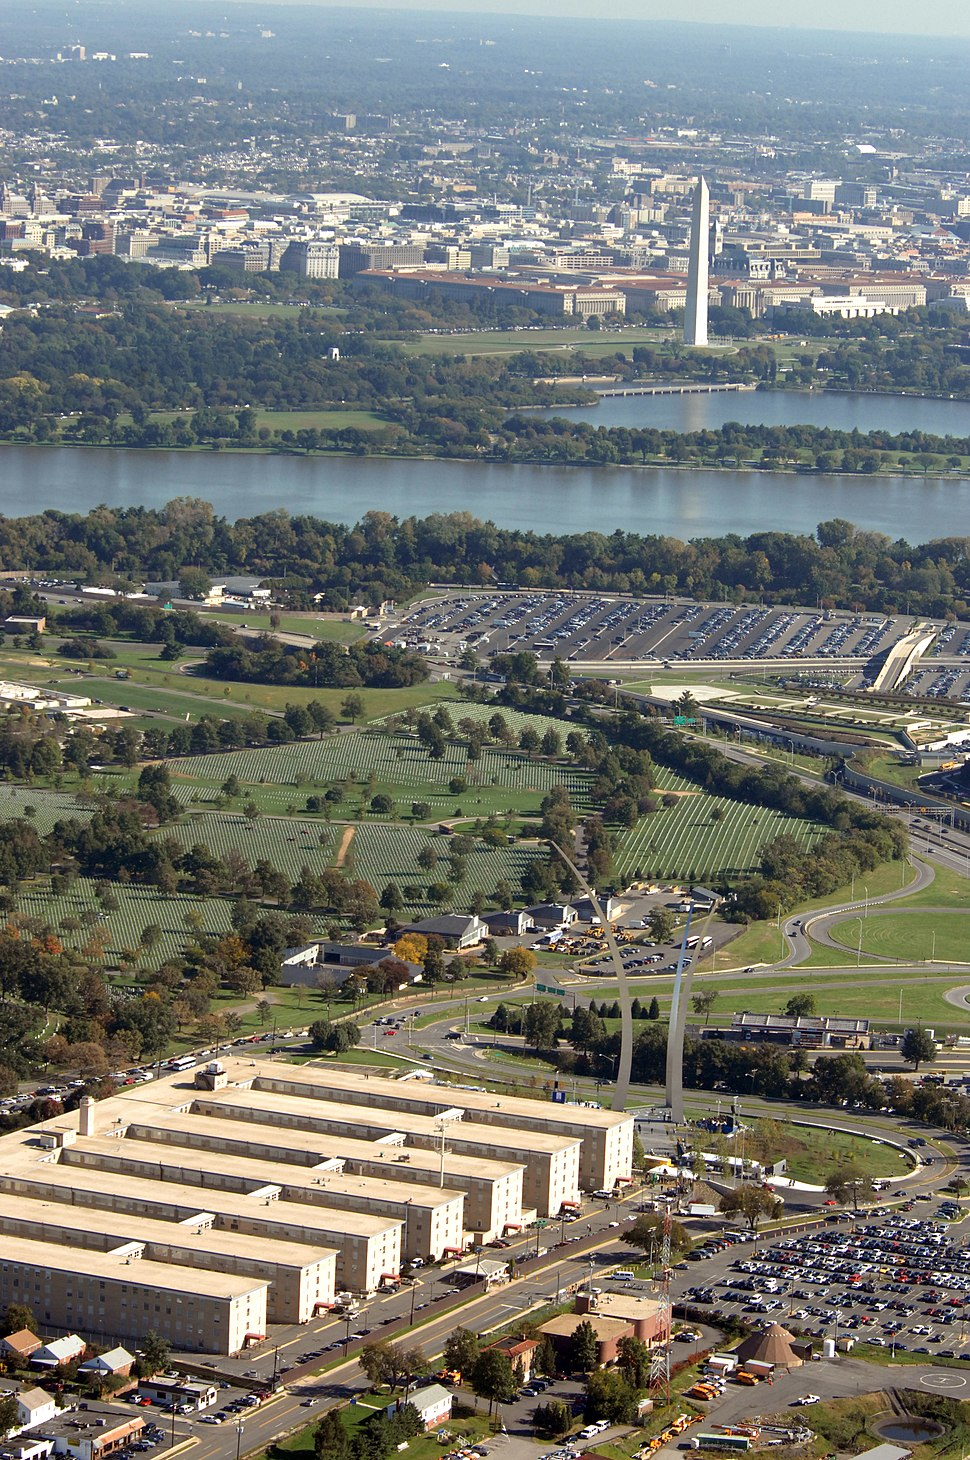 US Navy 061013-F-3500C-443 View over the U.S. Navy Annex, showing the completed U.S. Air Force memorial